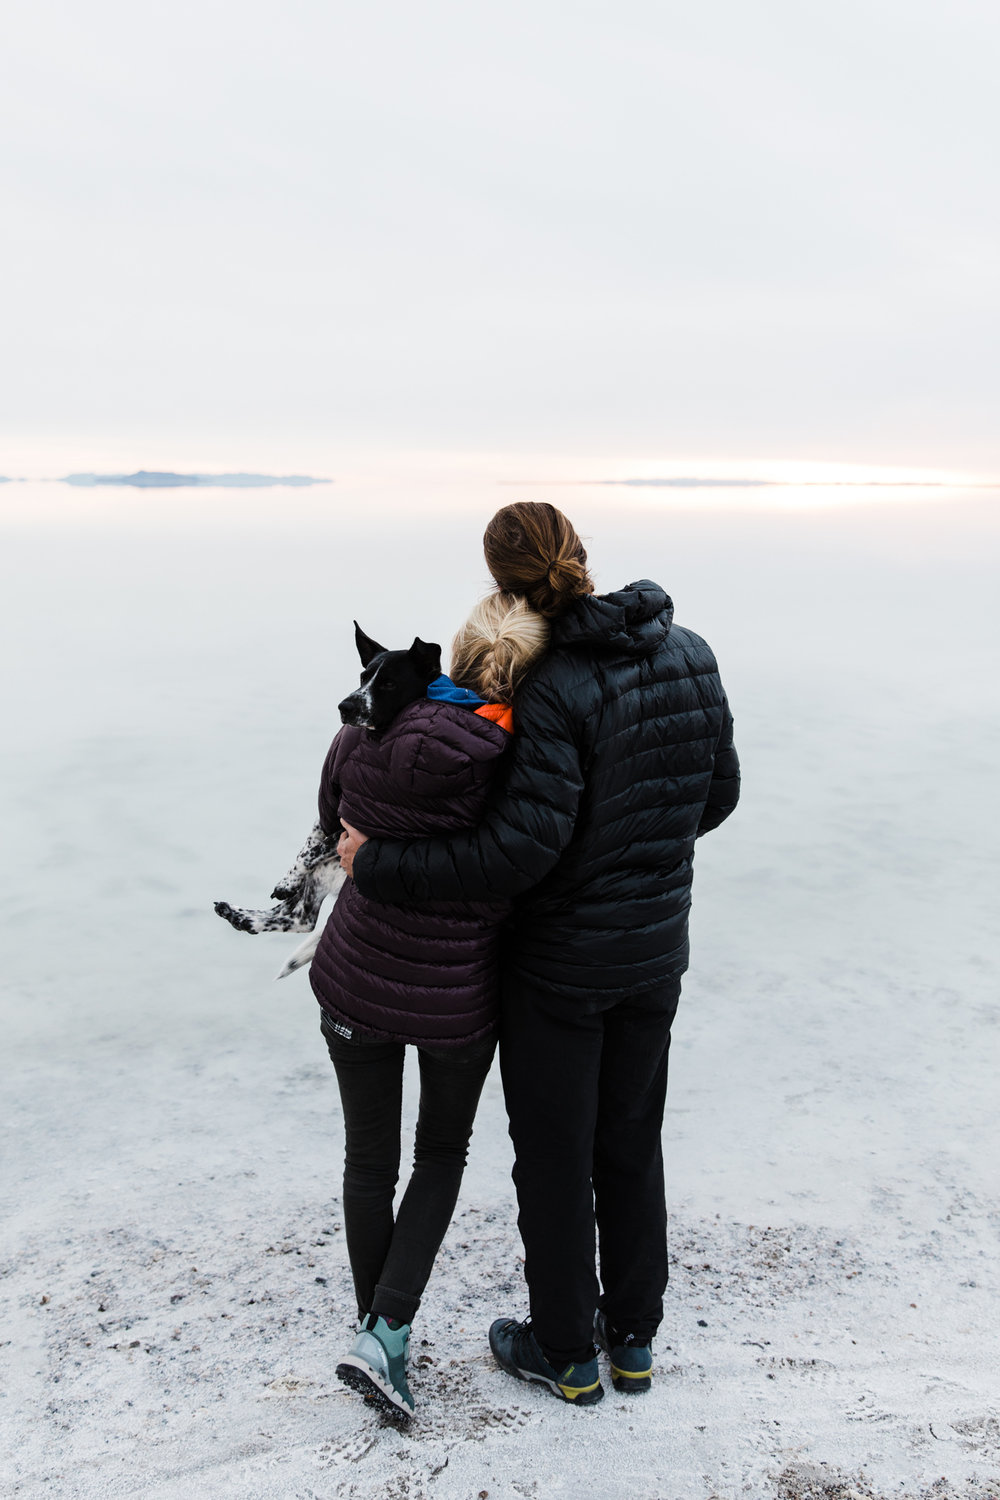 camping in the salt flats | utah and california adventure elopement photographers | the hearnes adventure photography | www.thehearnes.com